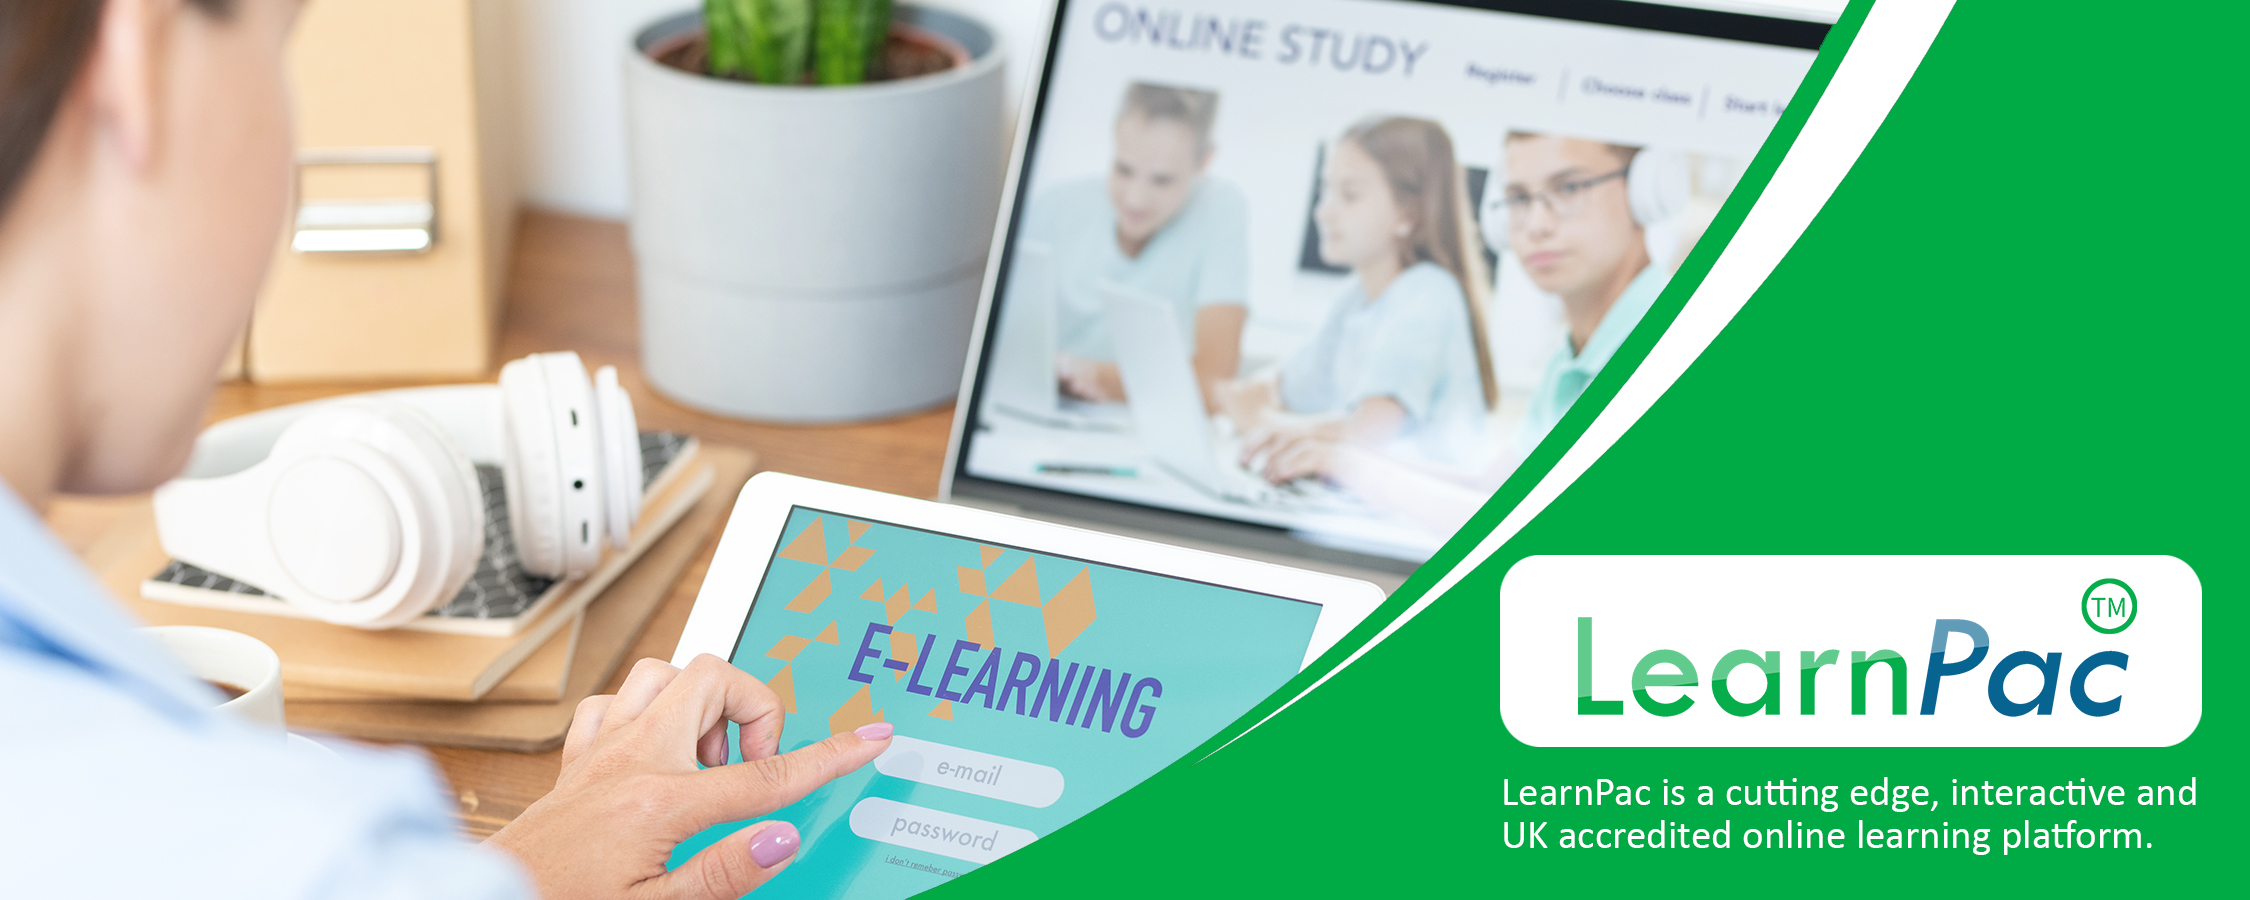 Coaching Salespeople Training - Online Learning Courses - E-Learning Courses - LearnPac Systems UK -